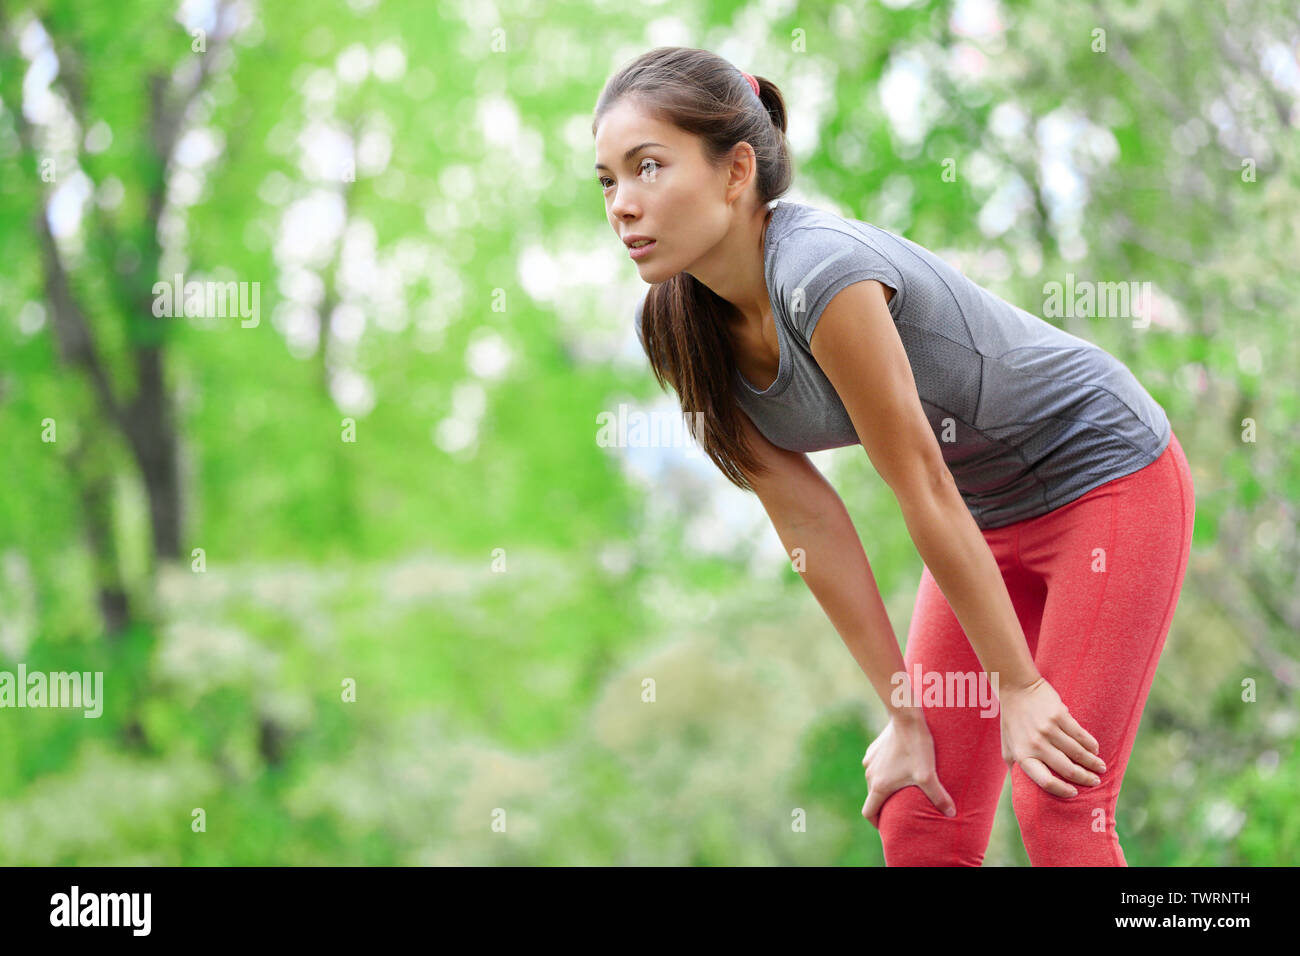 Asian woman athlete runner resting after running and jogging training outdoors in forest. Tired exhausted beautiful sports fitness model living healthy active lifestyle. Mixed race Asian Caucasian. Stock Photo